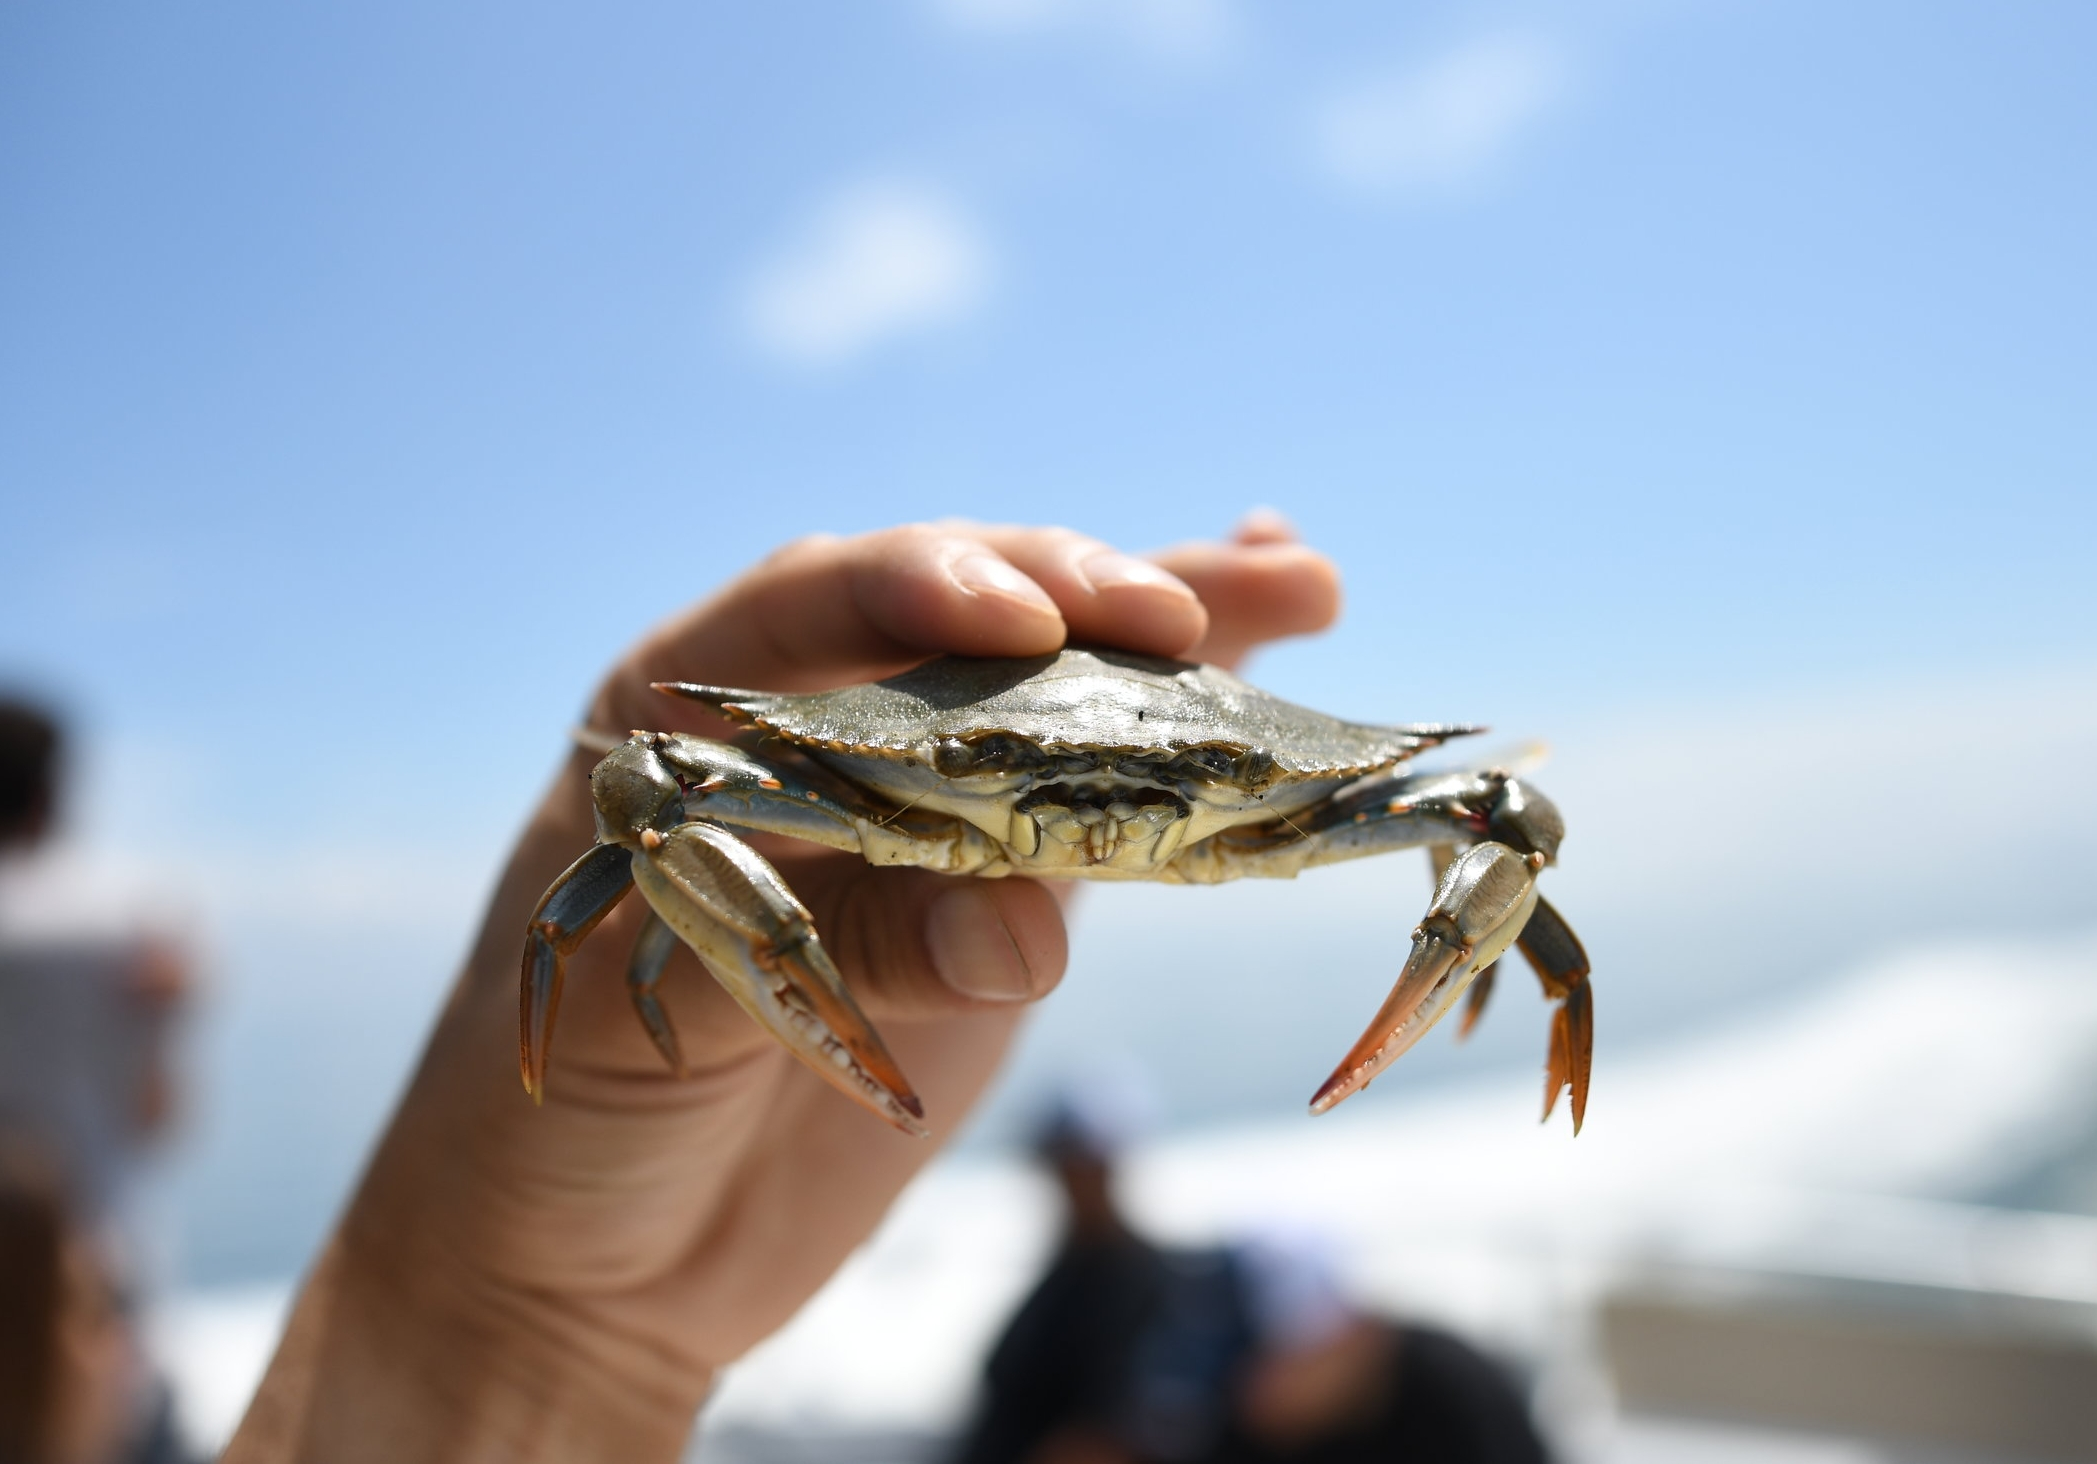 A Maryland Blue crab.